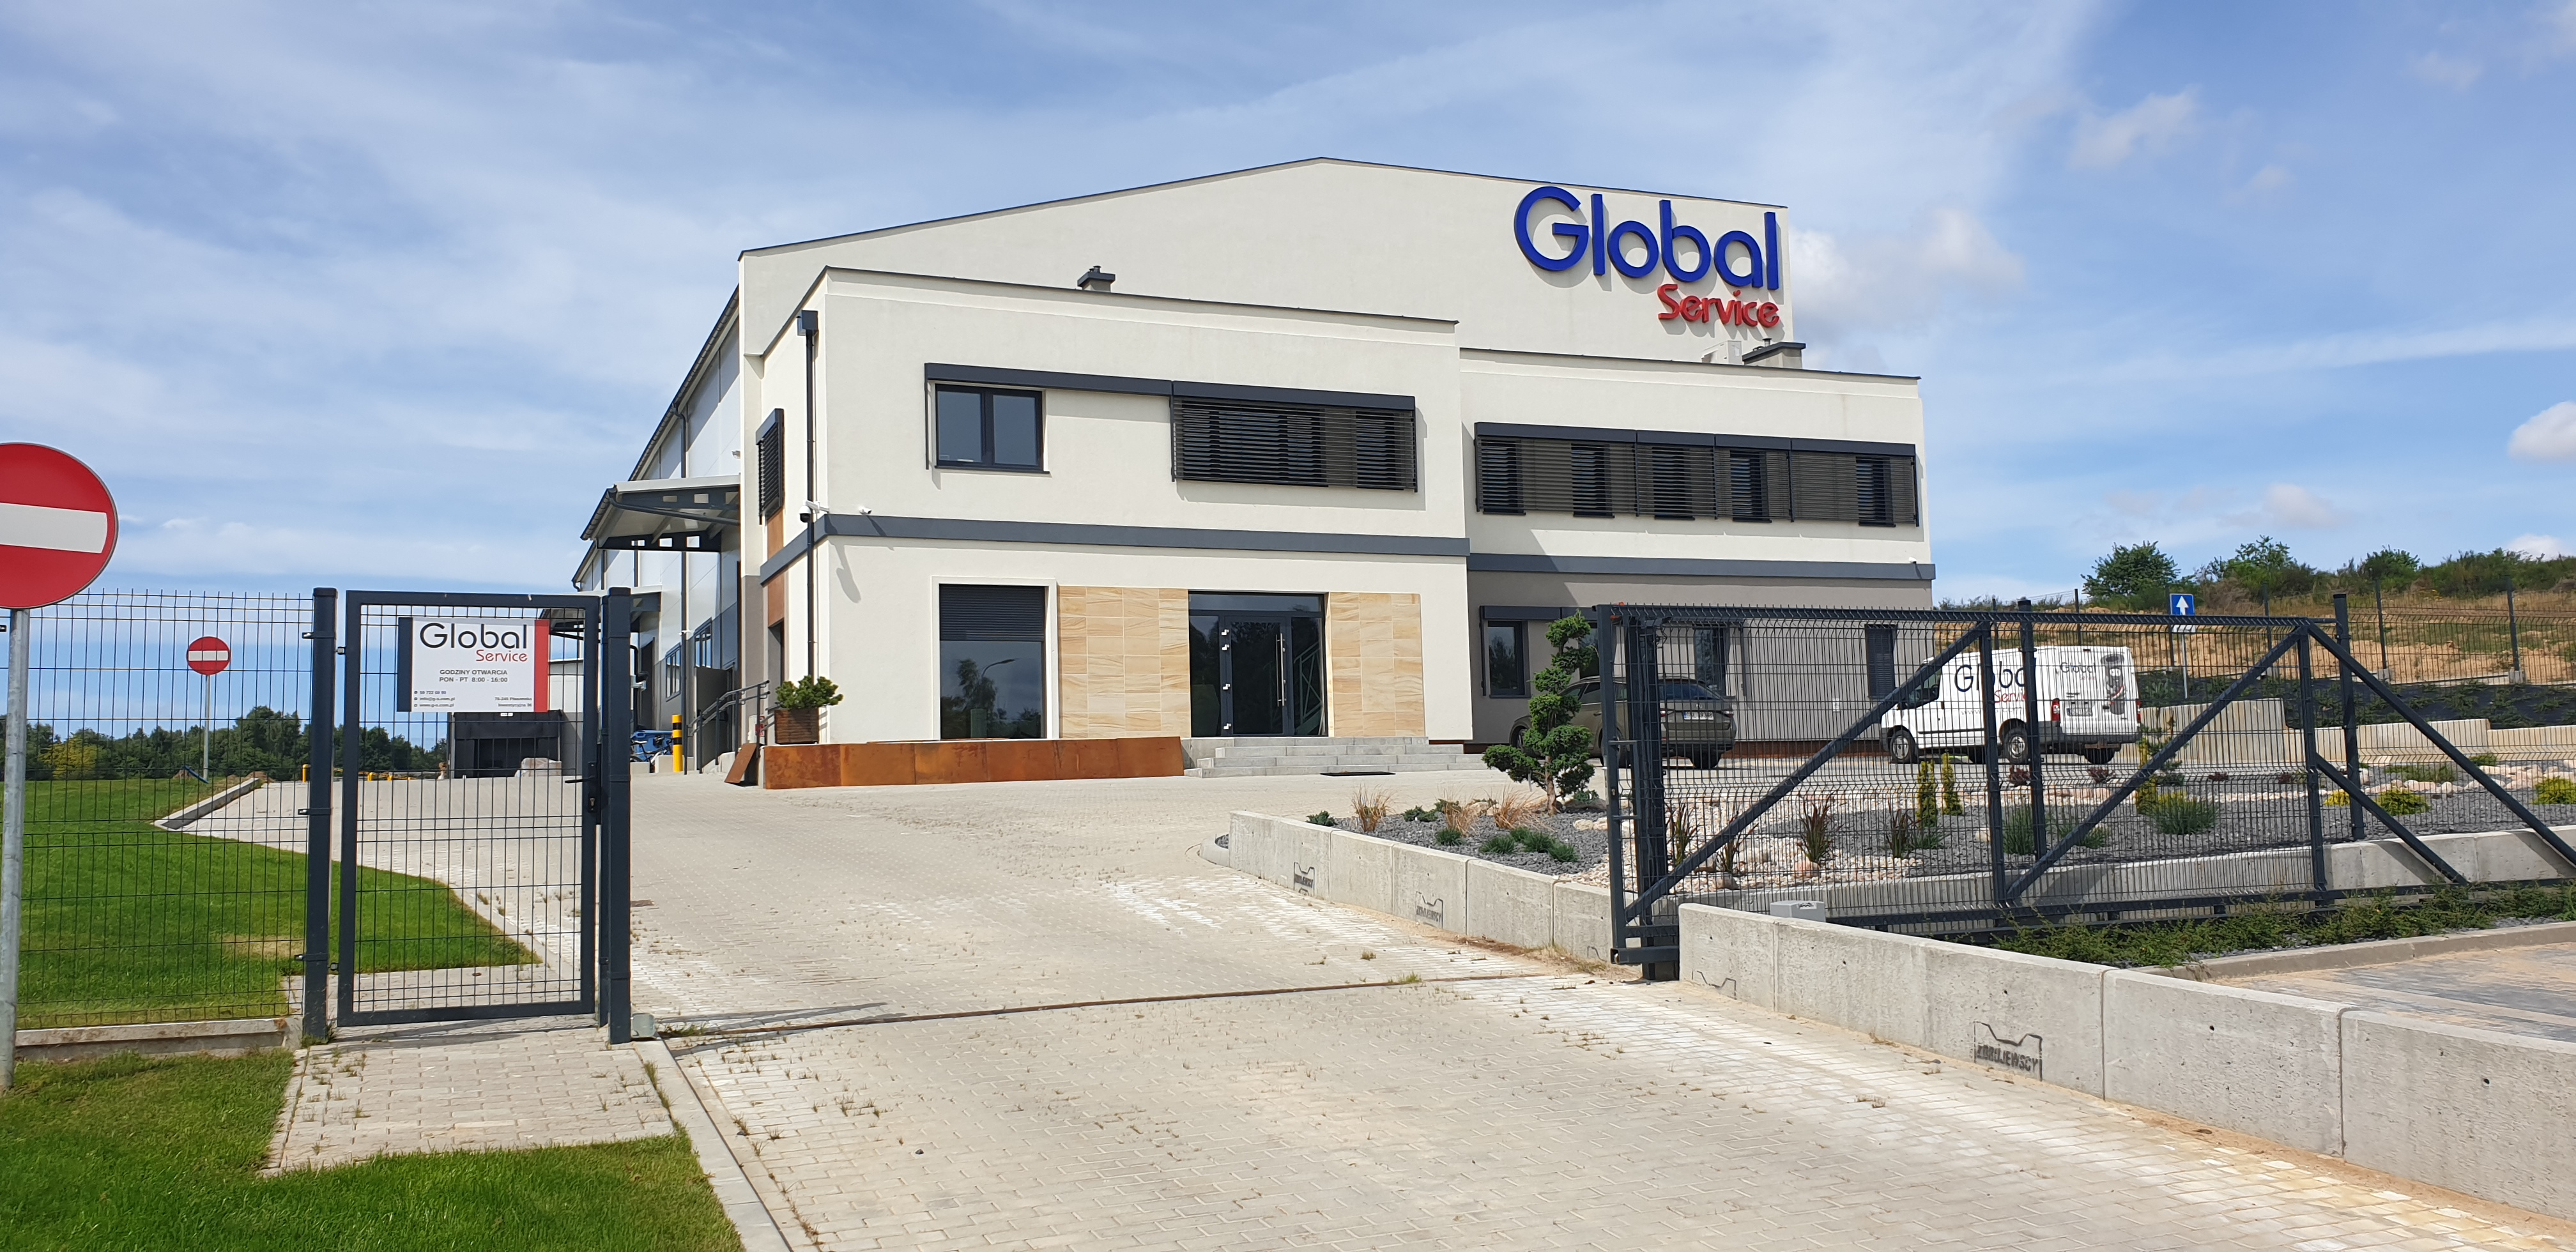 Siedziba Global Service